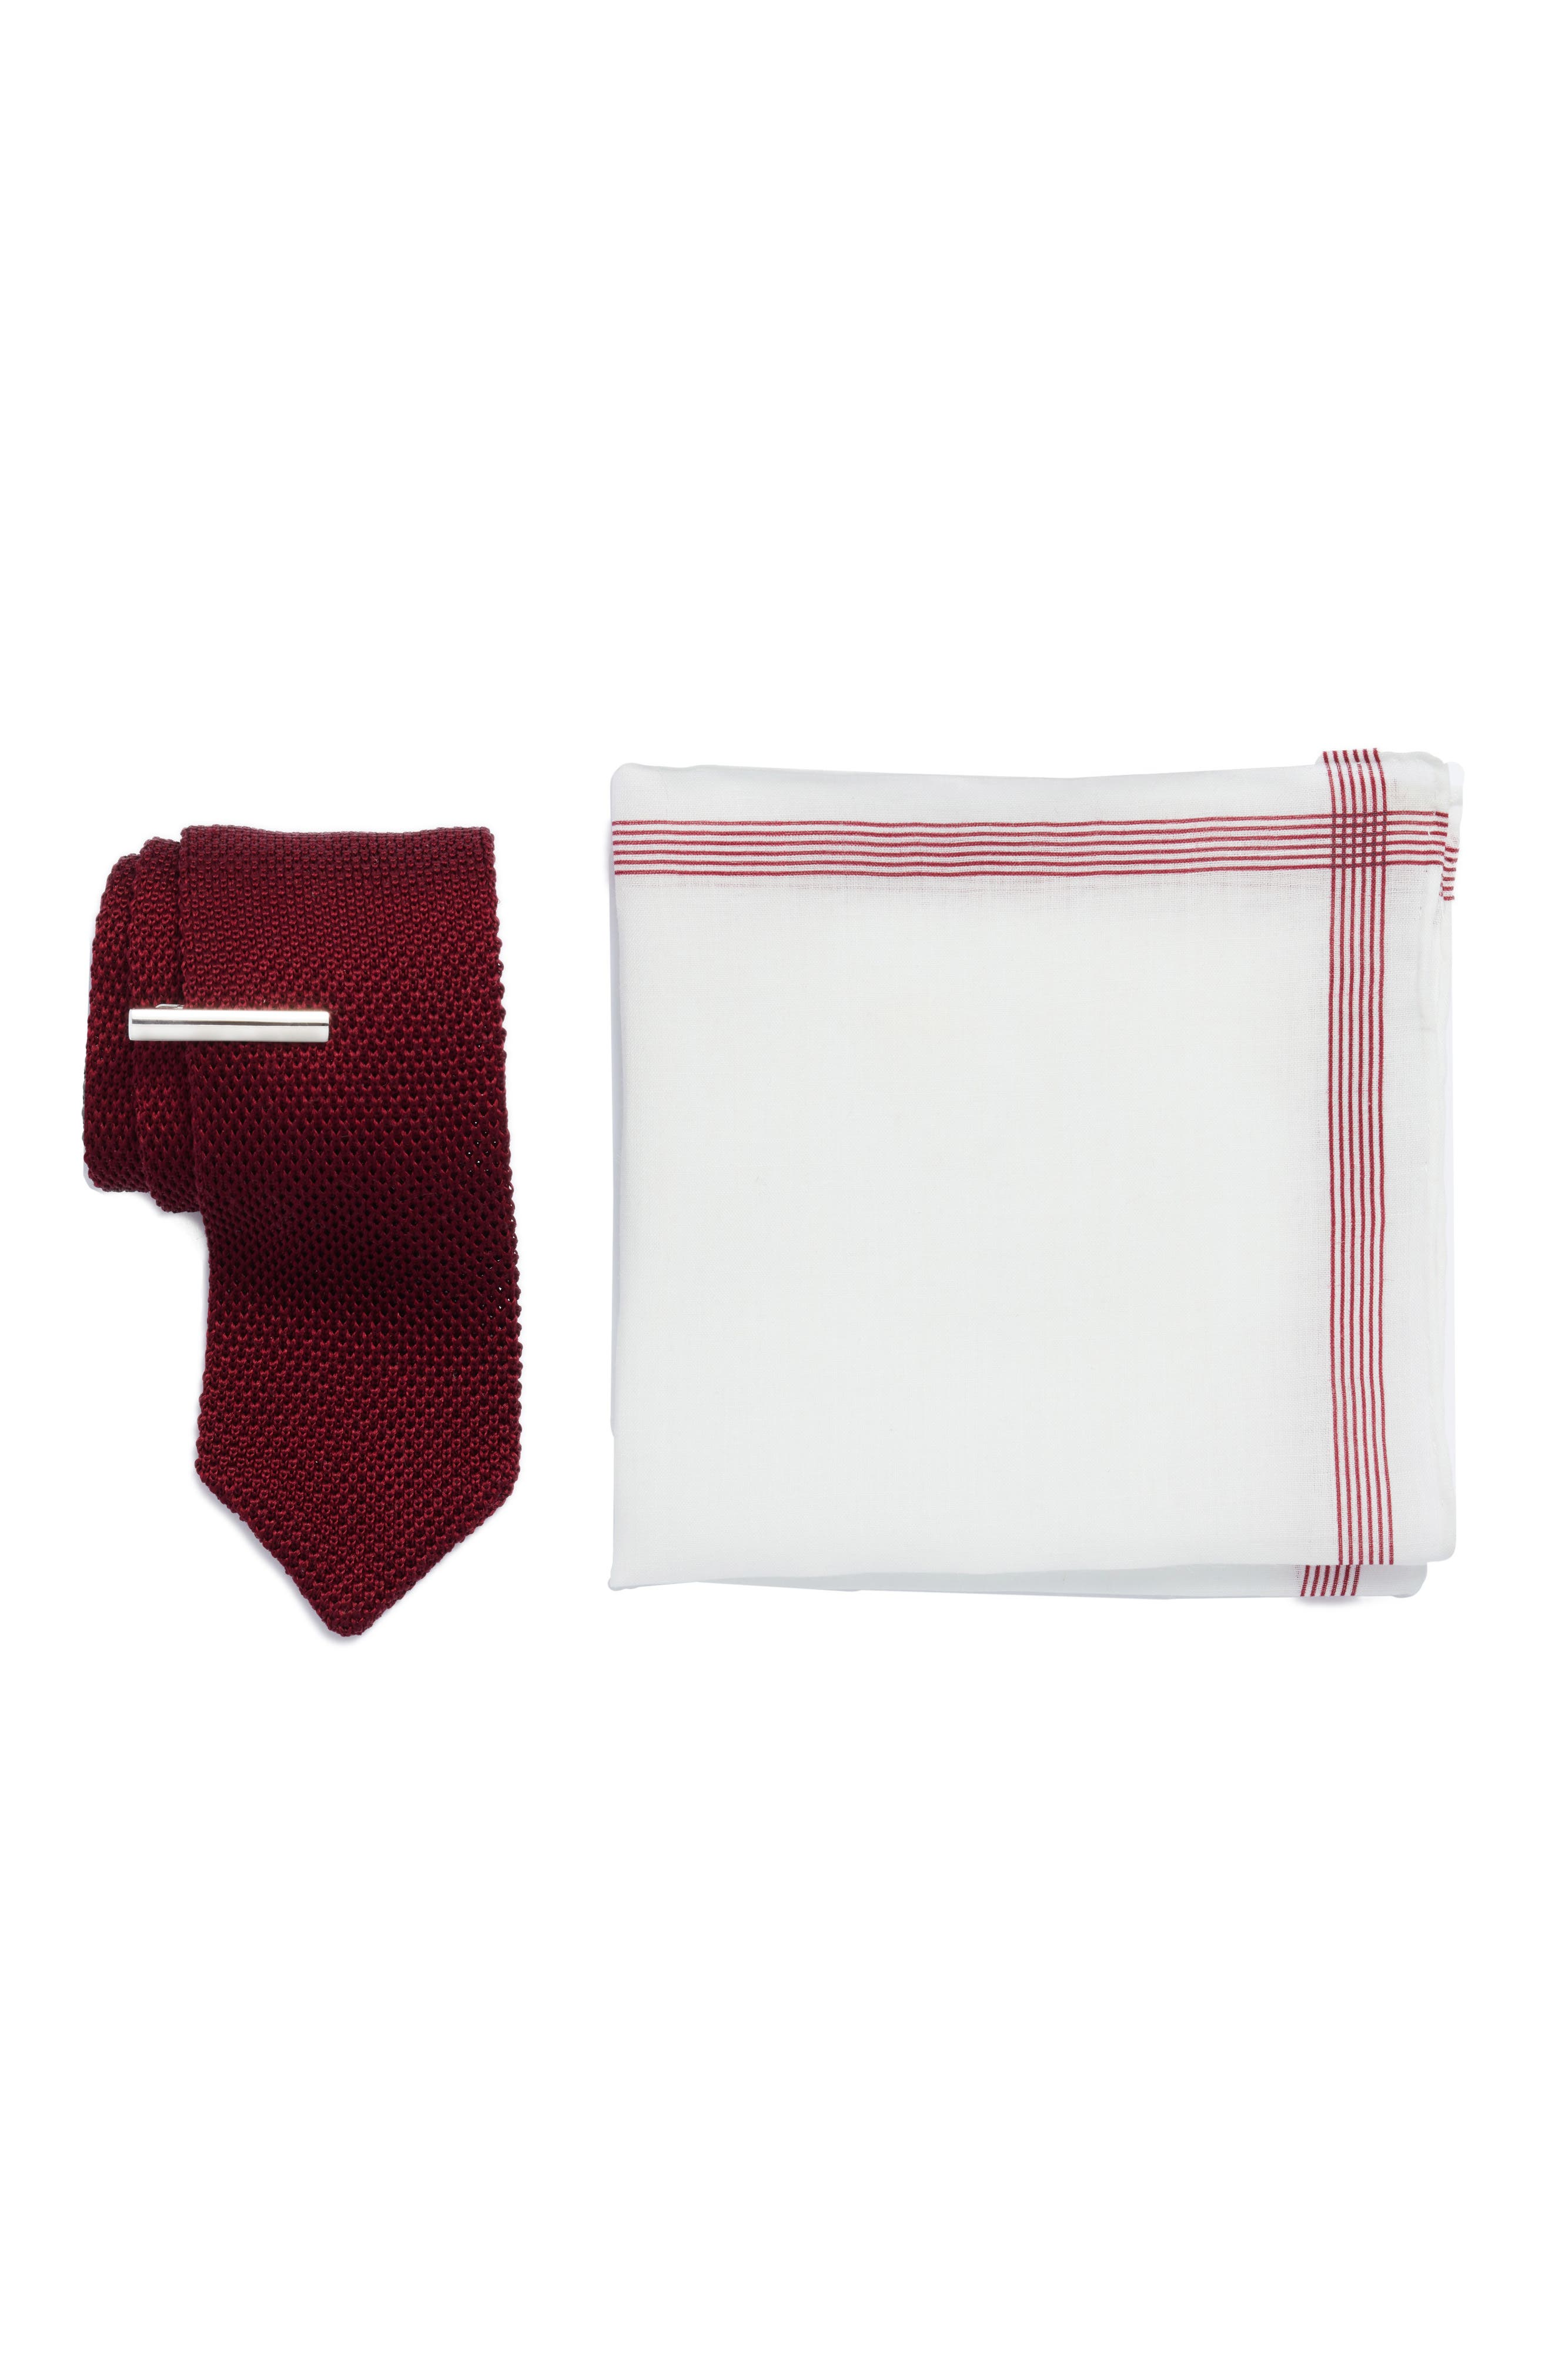 Pointed Tip 3-Piece Knit Tie Style Box,                         Main,                         color, BURGUNDY